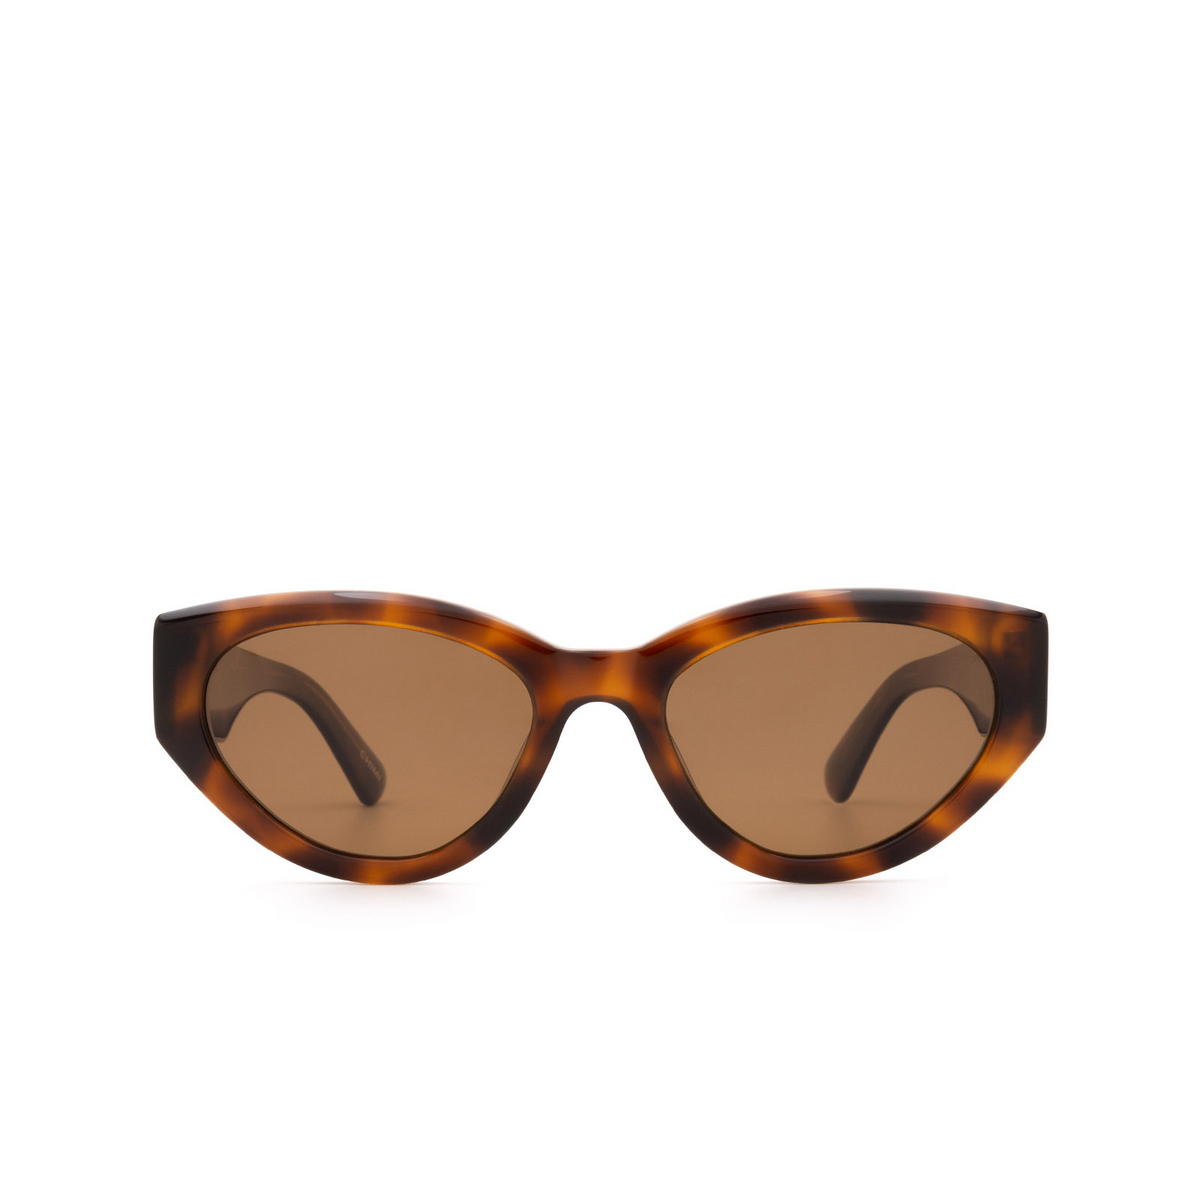 Chimi® Cat-eye Sunglasses: 06 color Tortoise - front view.